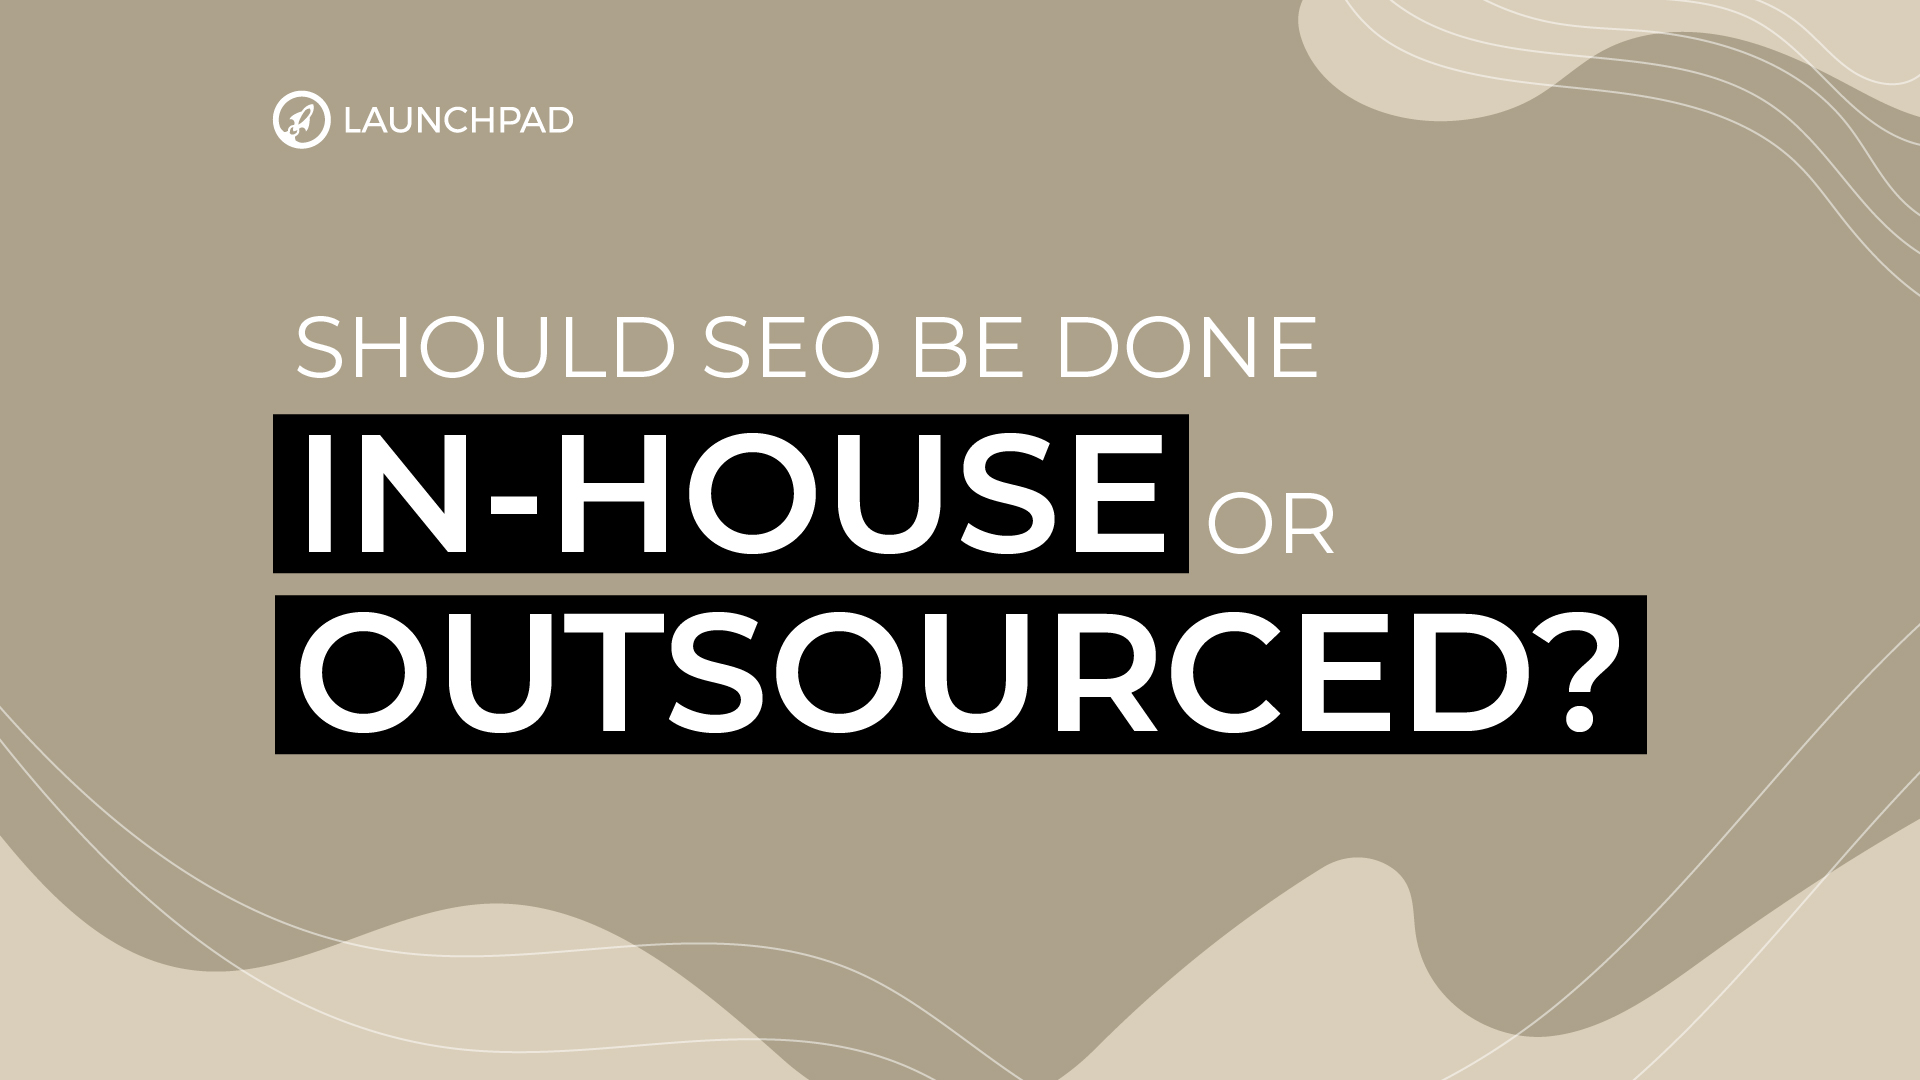 Should SEO be done in-house or outsourced?